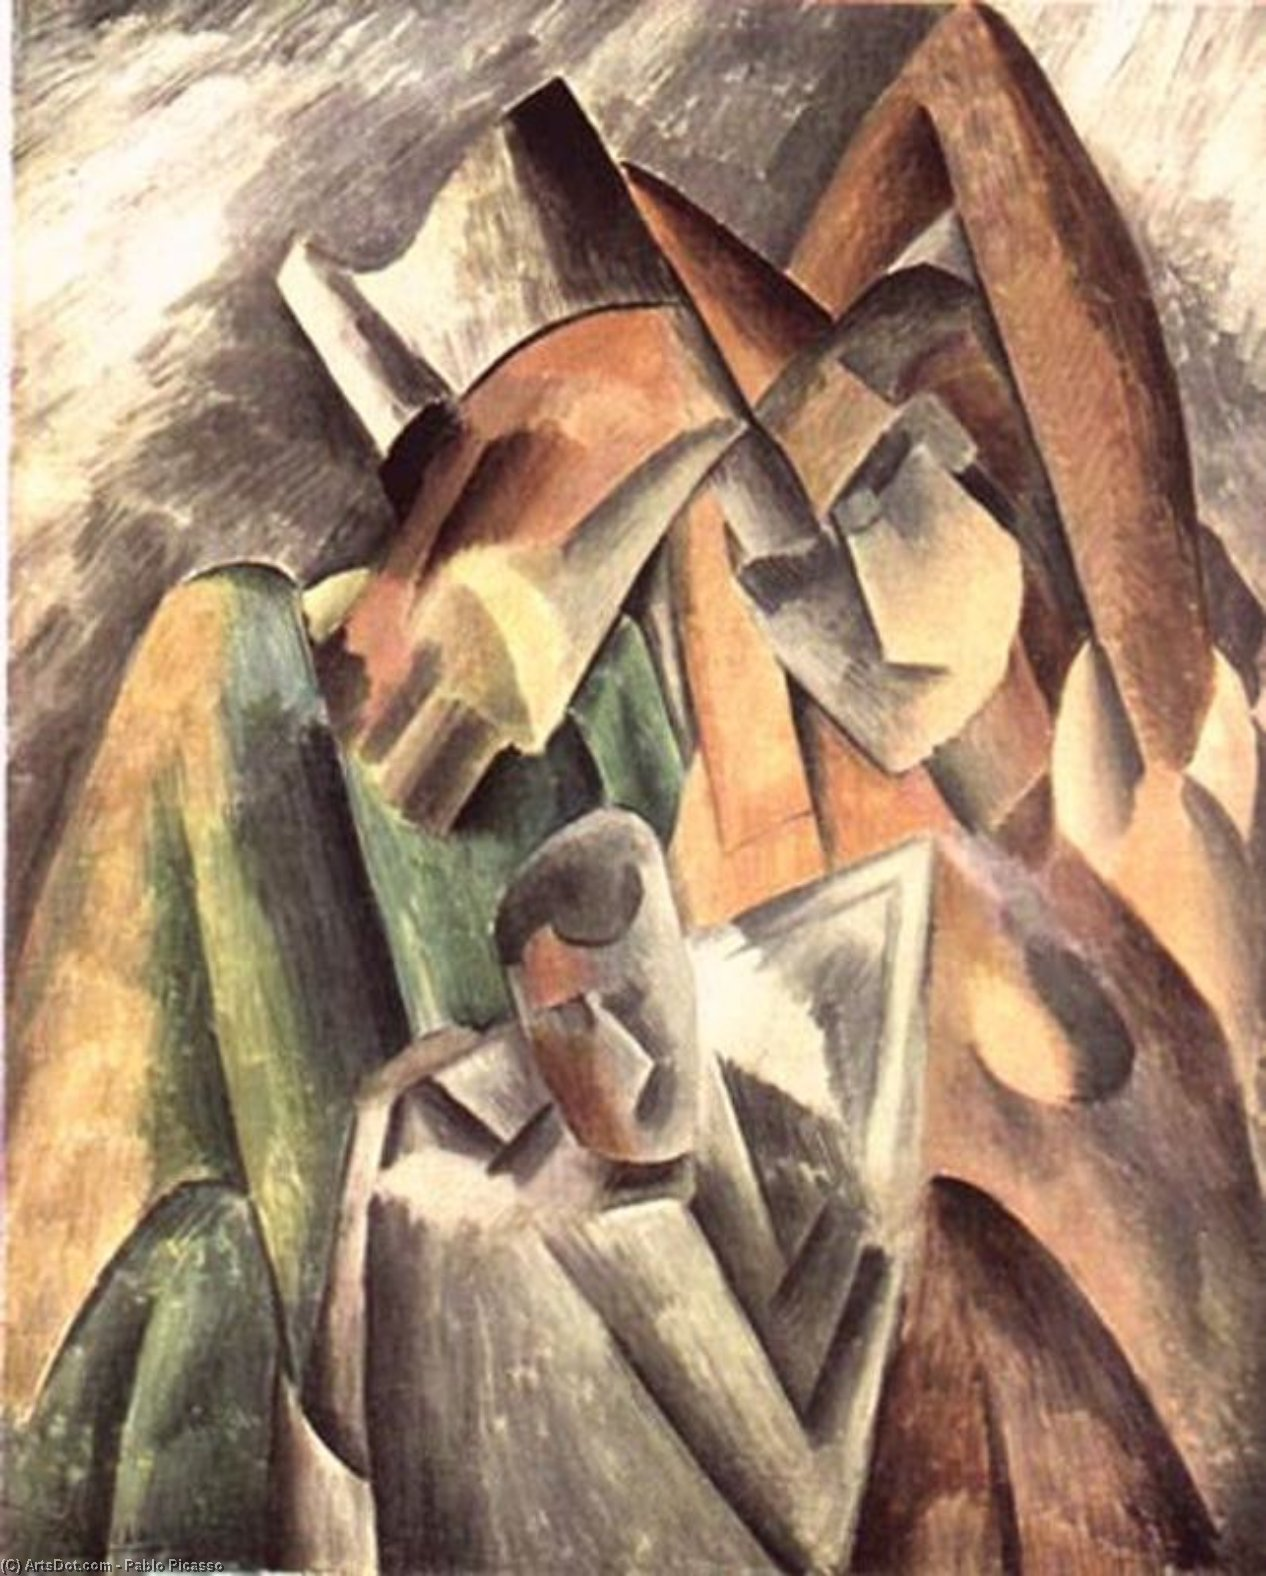 WikiOO.org - Encyclopedia of Fine Arts - Maľba, Artwork Pablo Picasso - Harlequin and his family